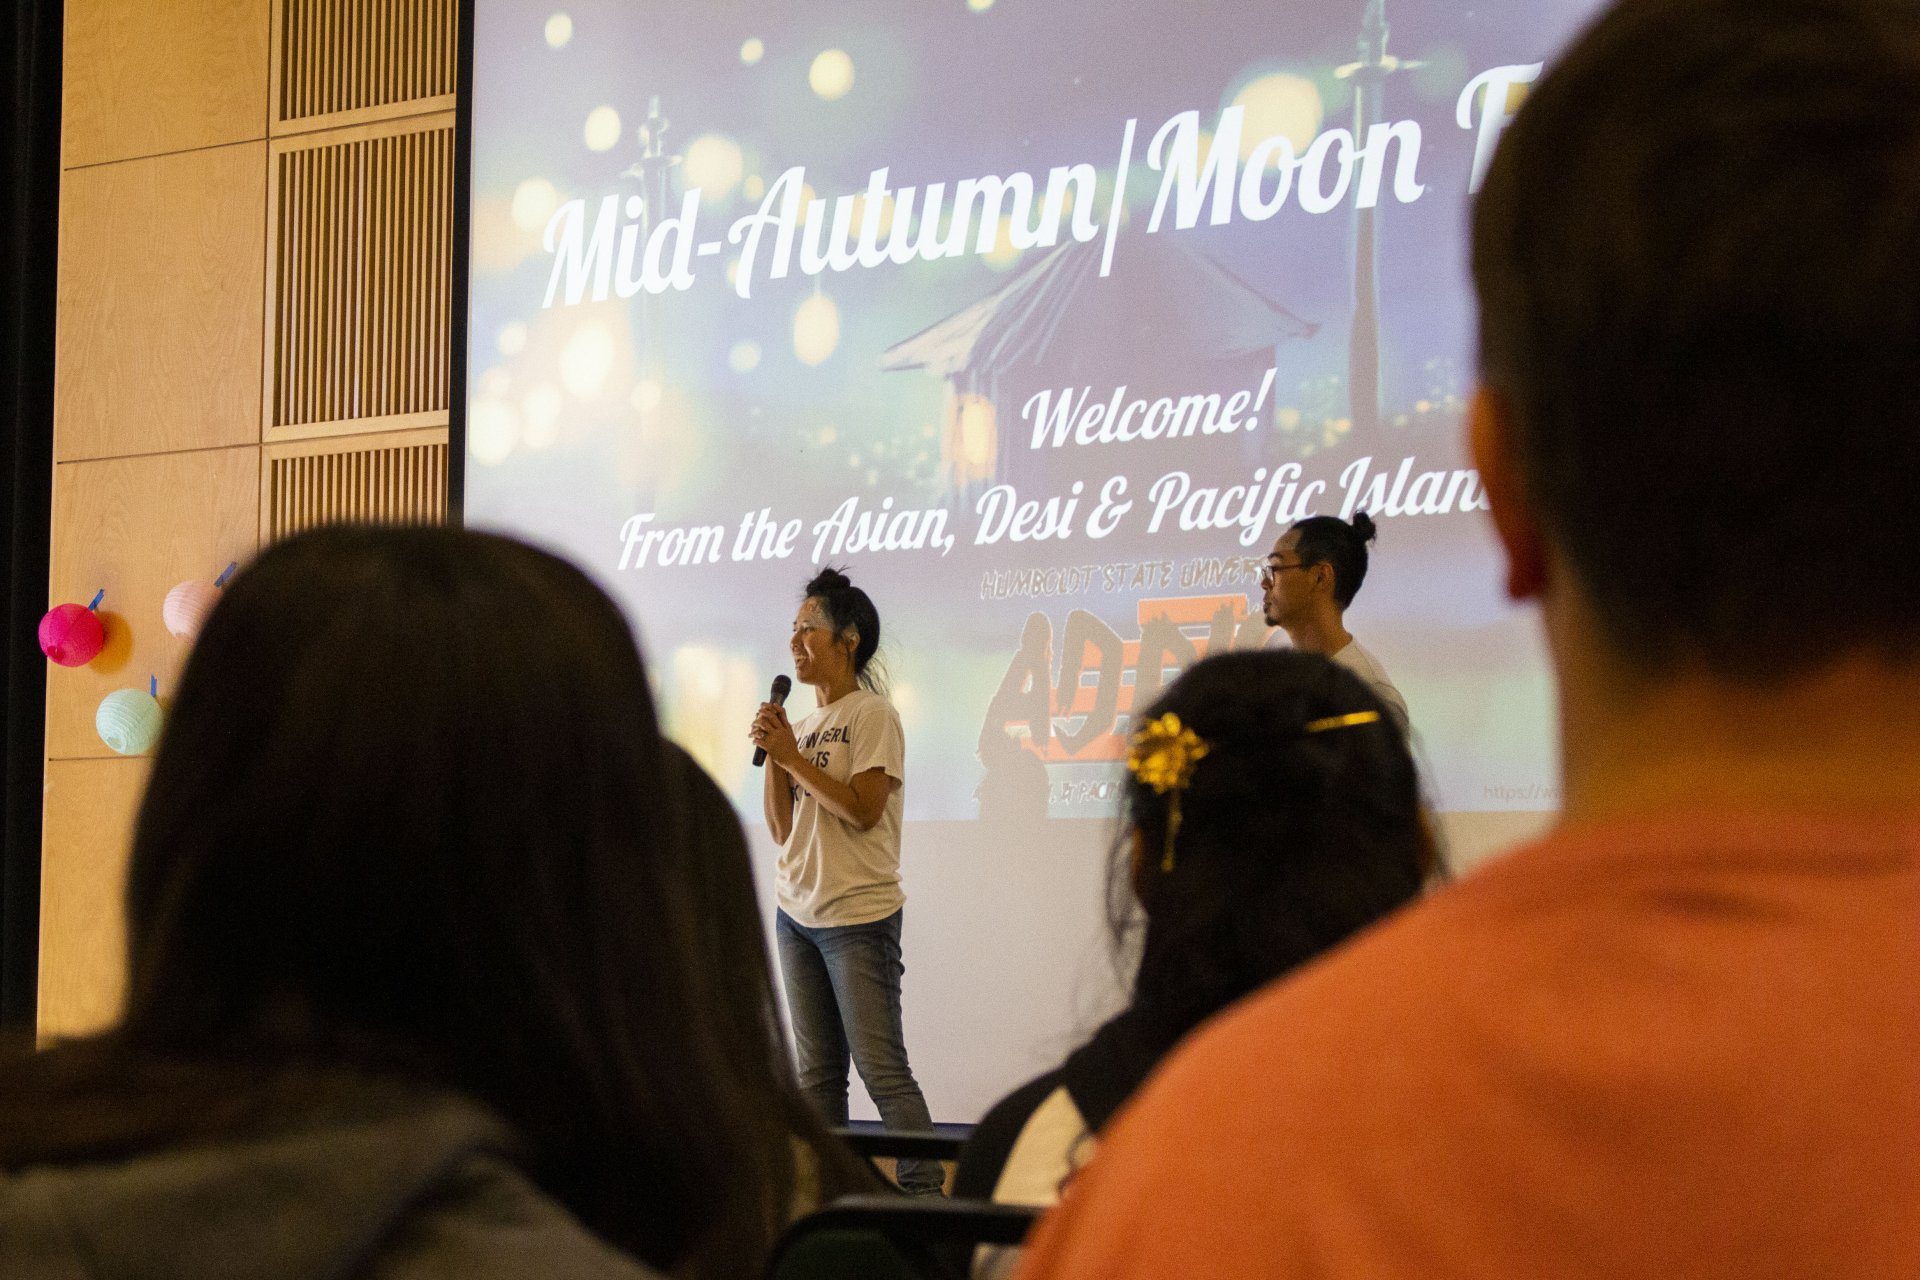 ADPIC President Tammy Phrakonkham speaks to the gathered students and community members at the Mid-Autumn Moon Festival in the Kate Buchanan Room on September 13. | Photo by Thomas Lal